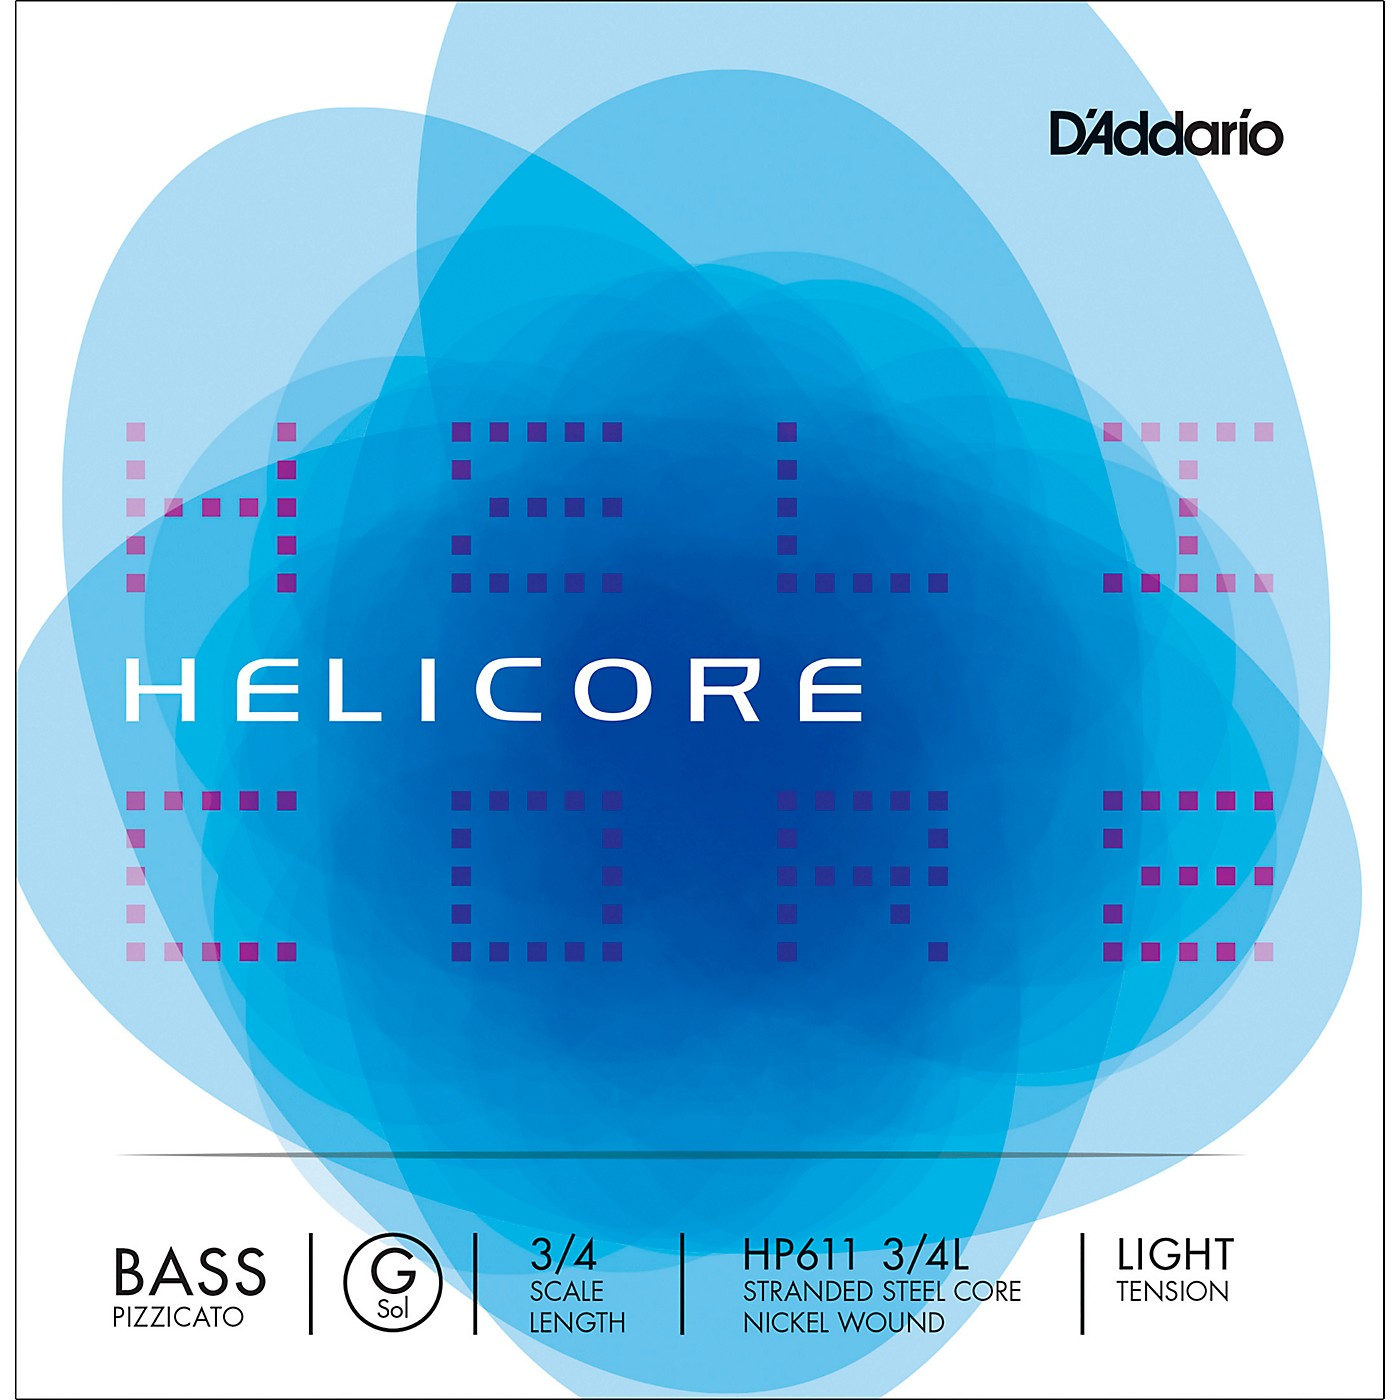 D'Addario Helicore Pizzicato Series Double Bass G String thumbnail